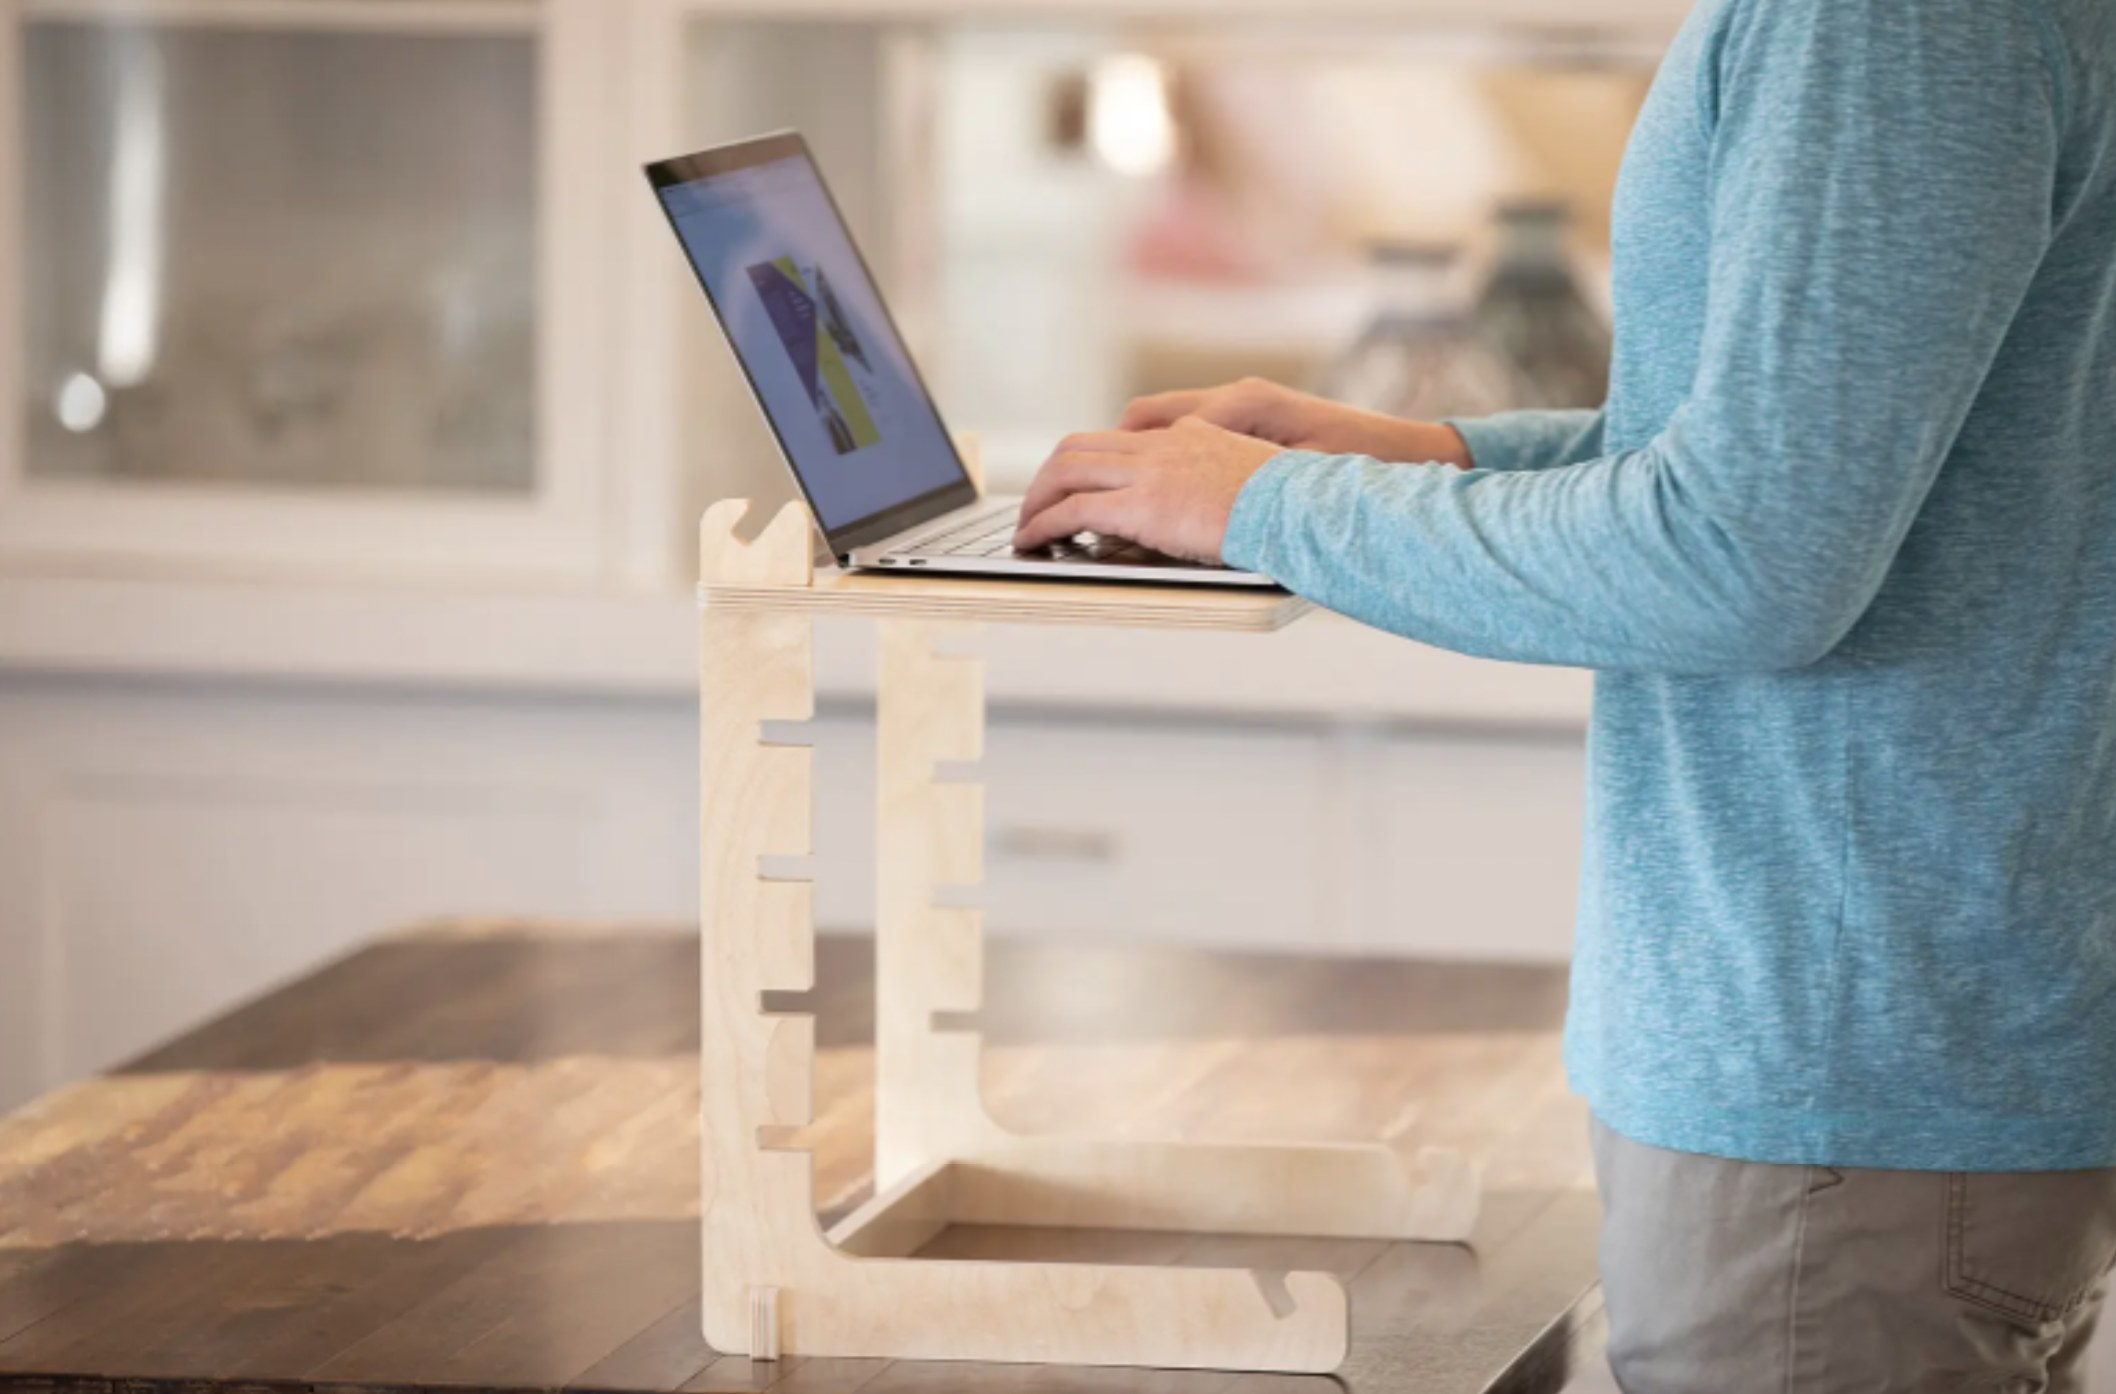 a person standing and working on their laptop that is supported by an adjustable desk stand made of wood